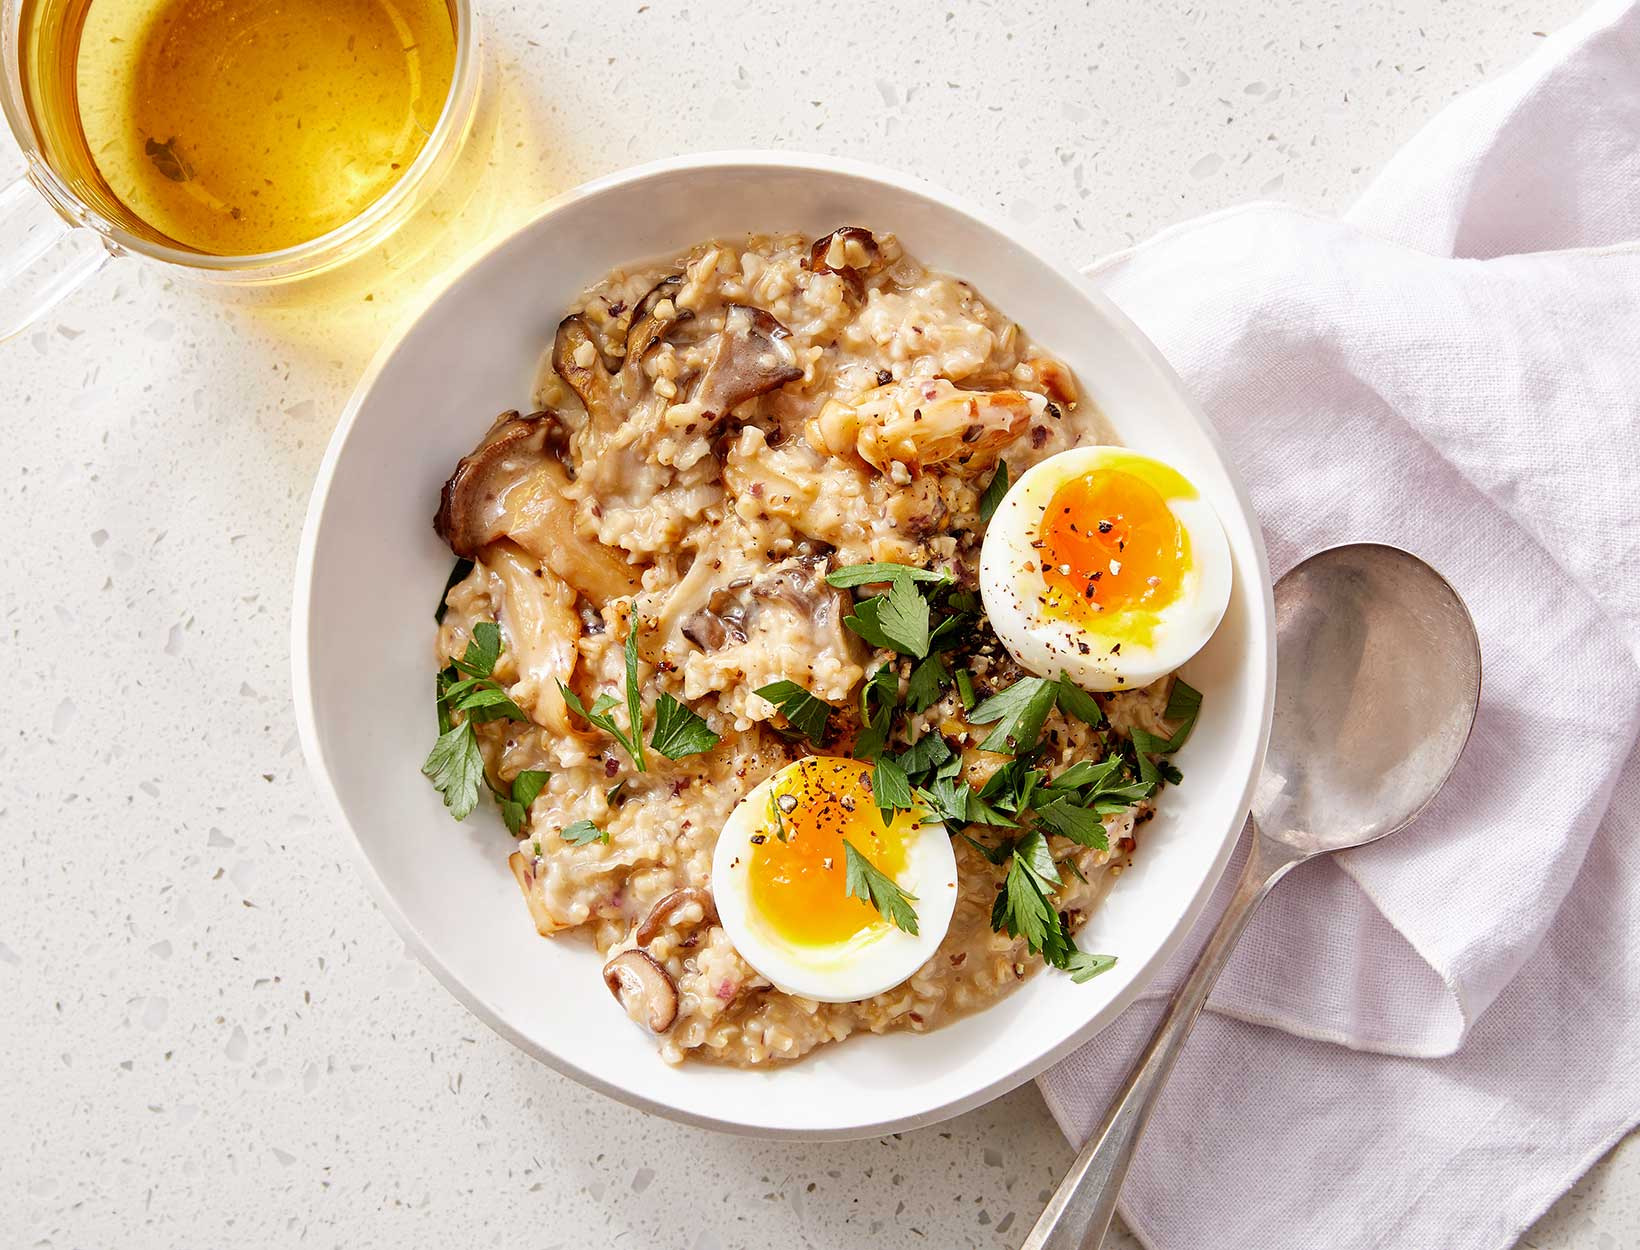 Savory Oats with Mushrooms andEgg